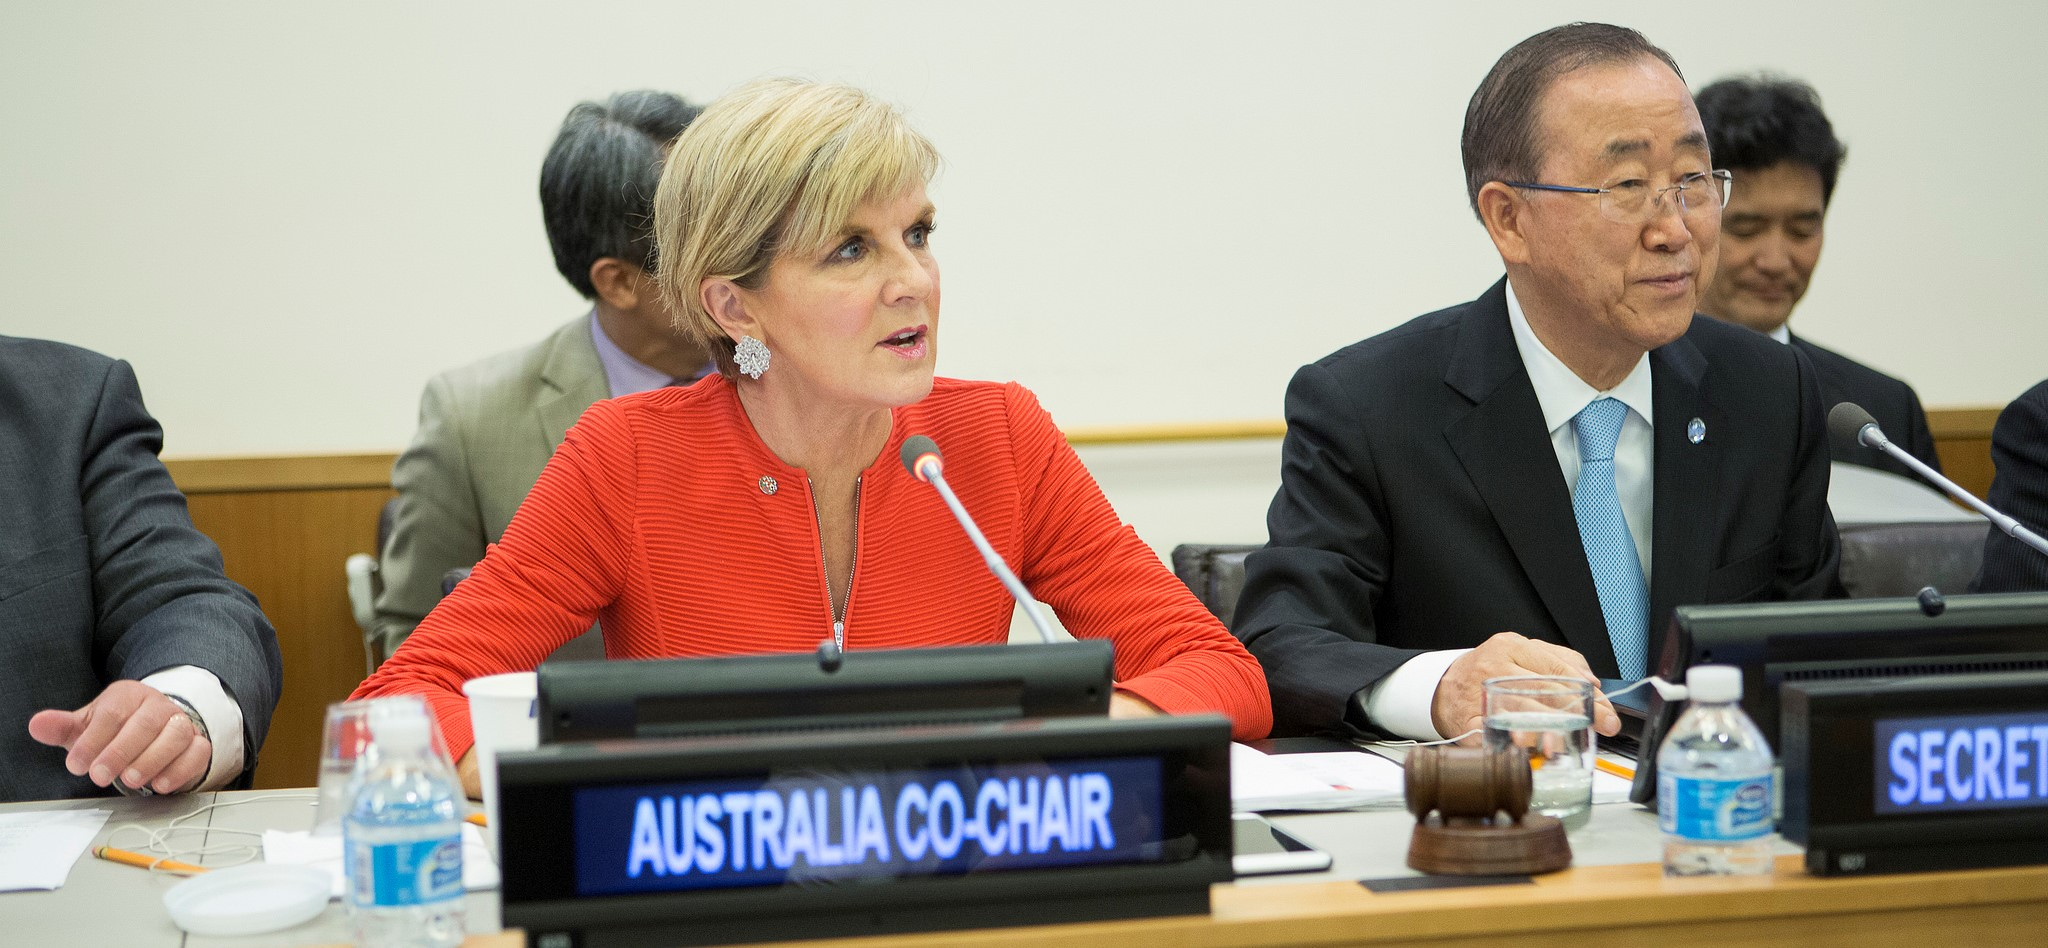 Australian foreign minister Julie Bishop at the UN in August 2016. (Photo: Flickr/DFAT)